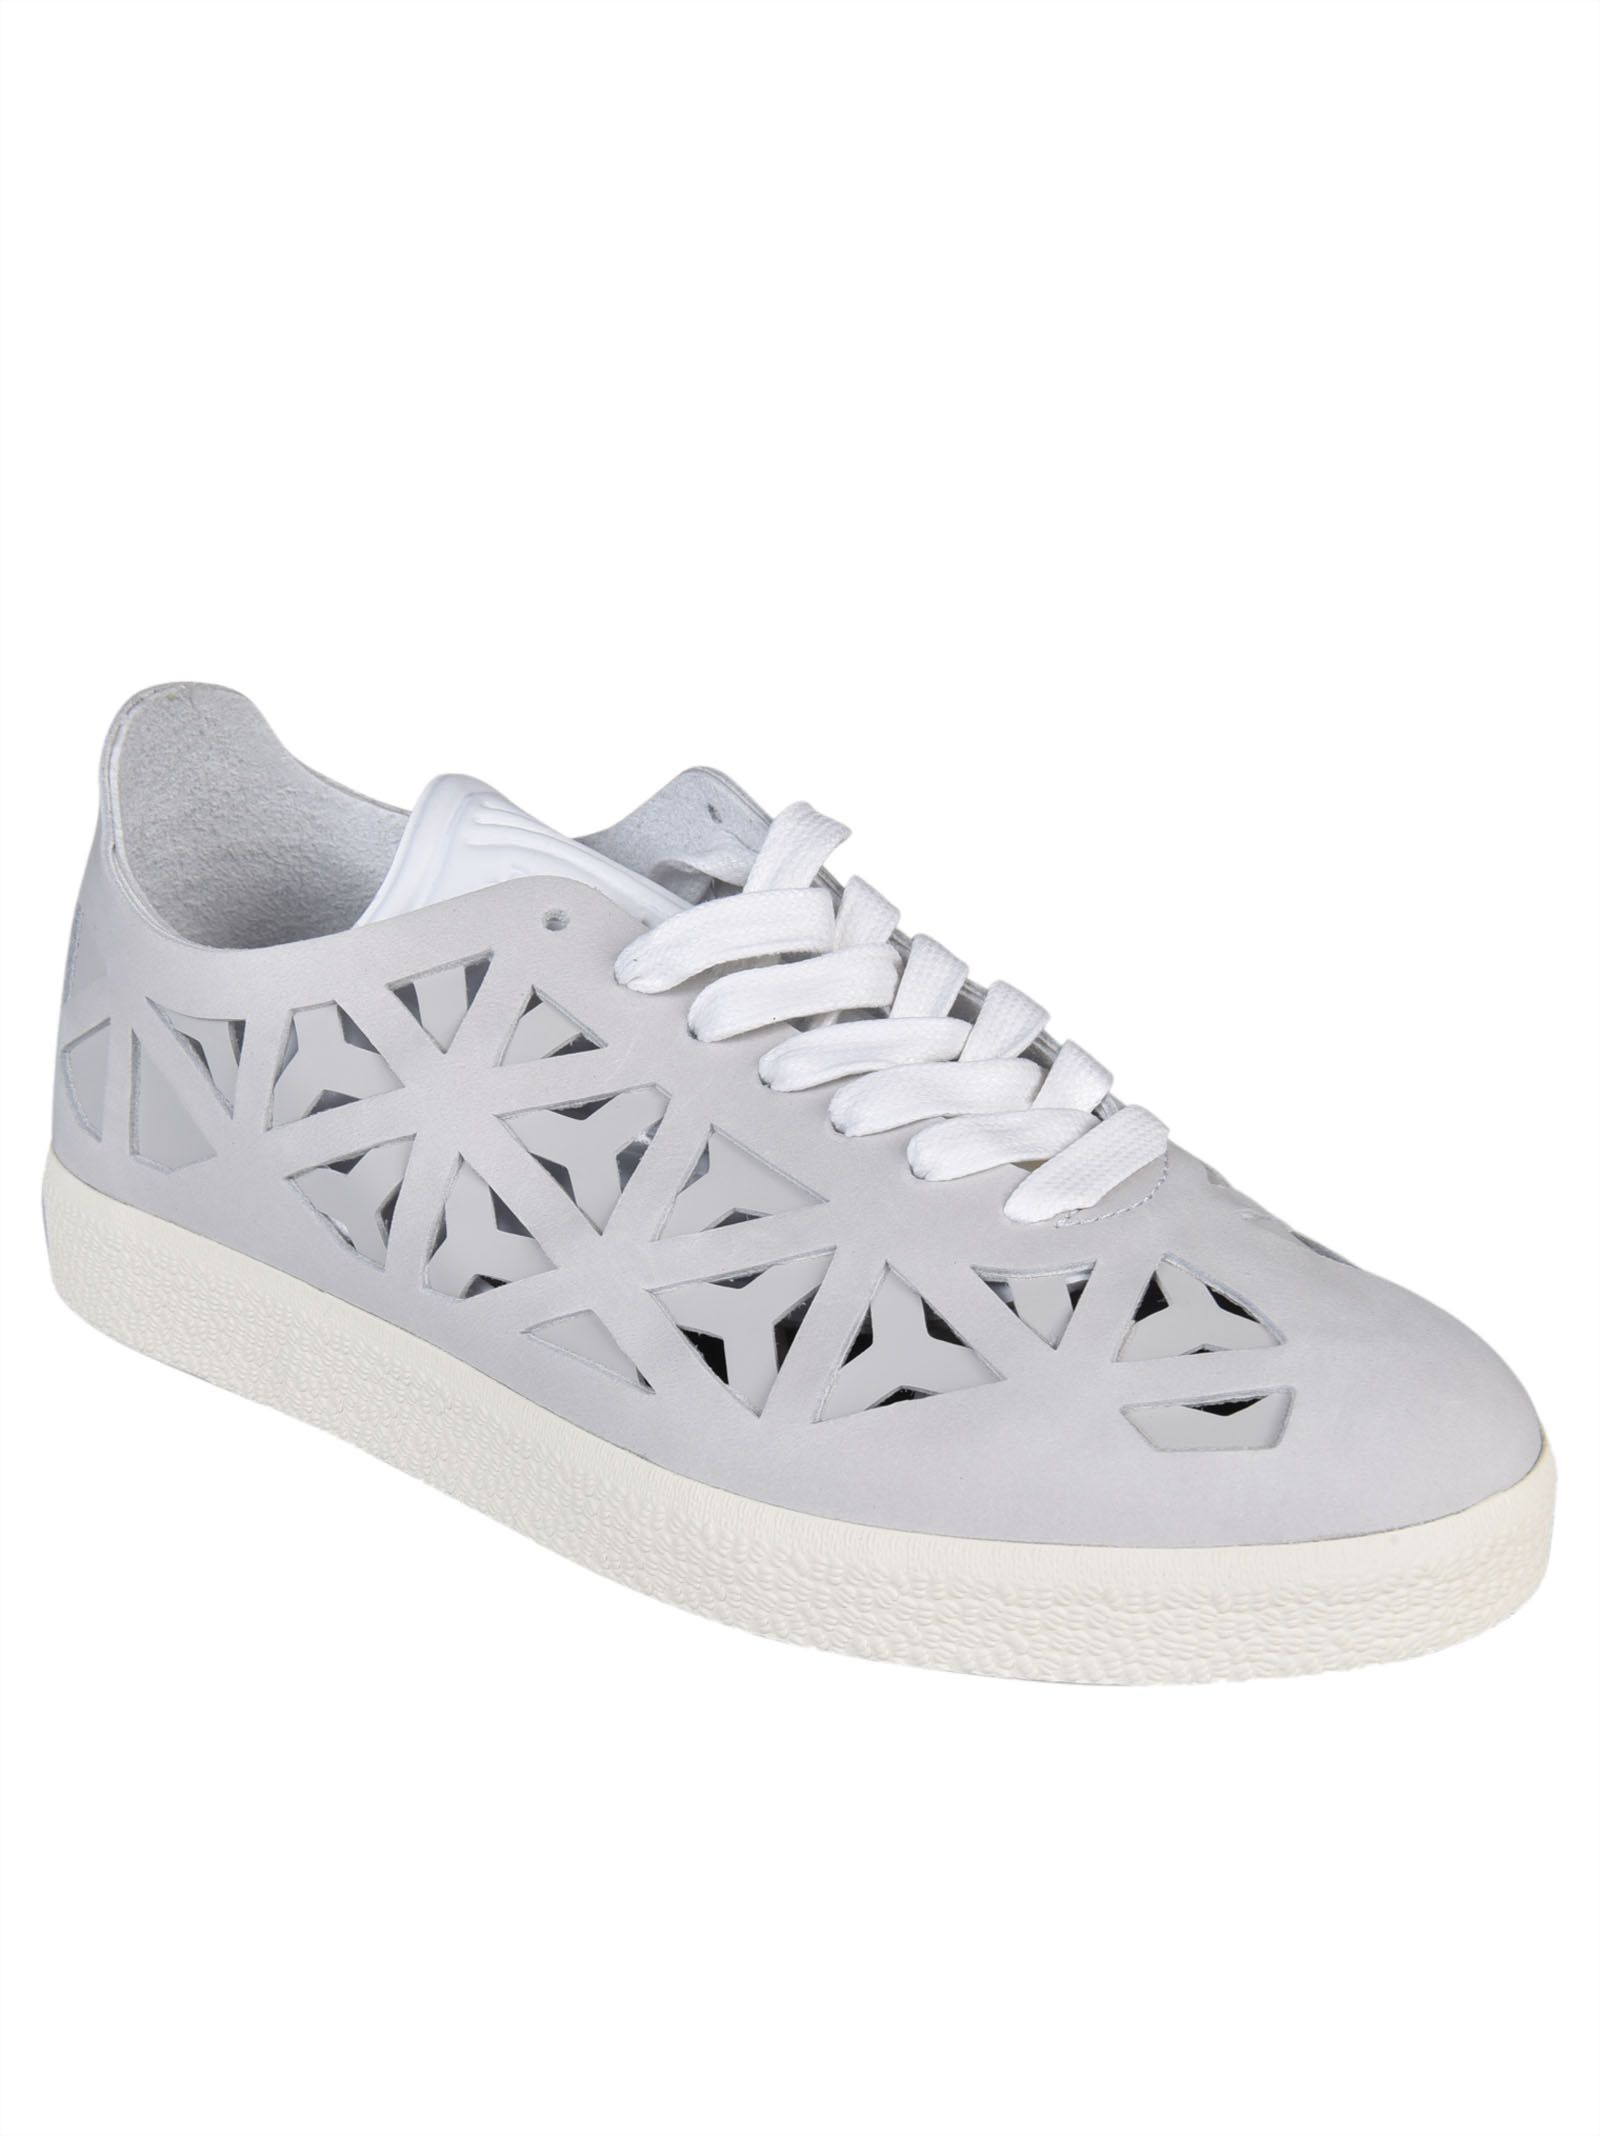 official photos 12141 4abba Adidas - Adidas Gazelle Cutout Sneakers - White, Womens Sneakers  Italist